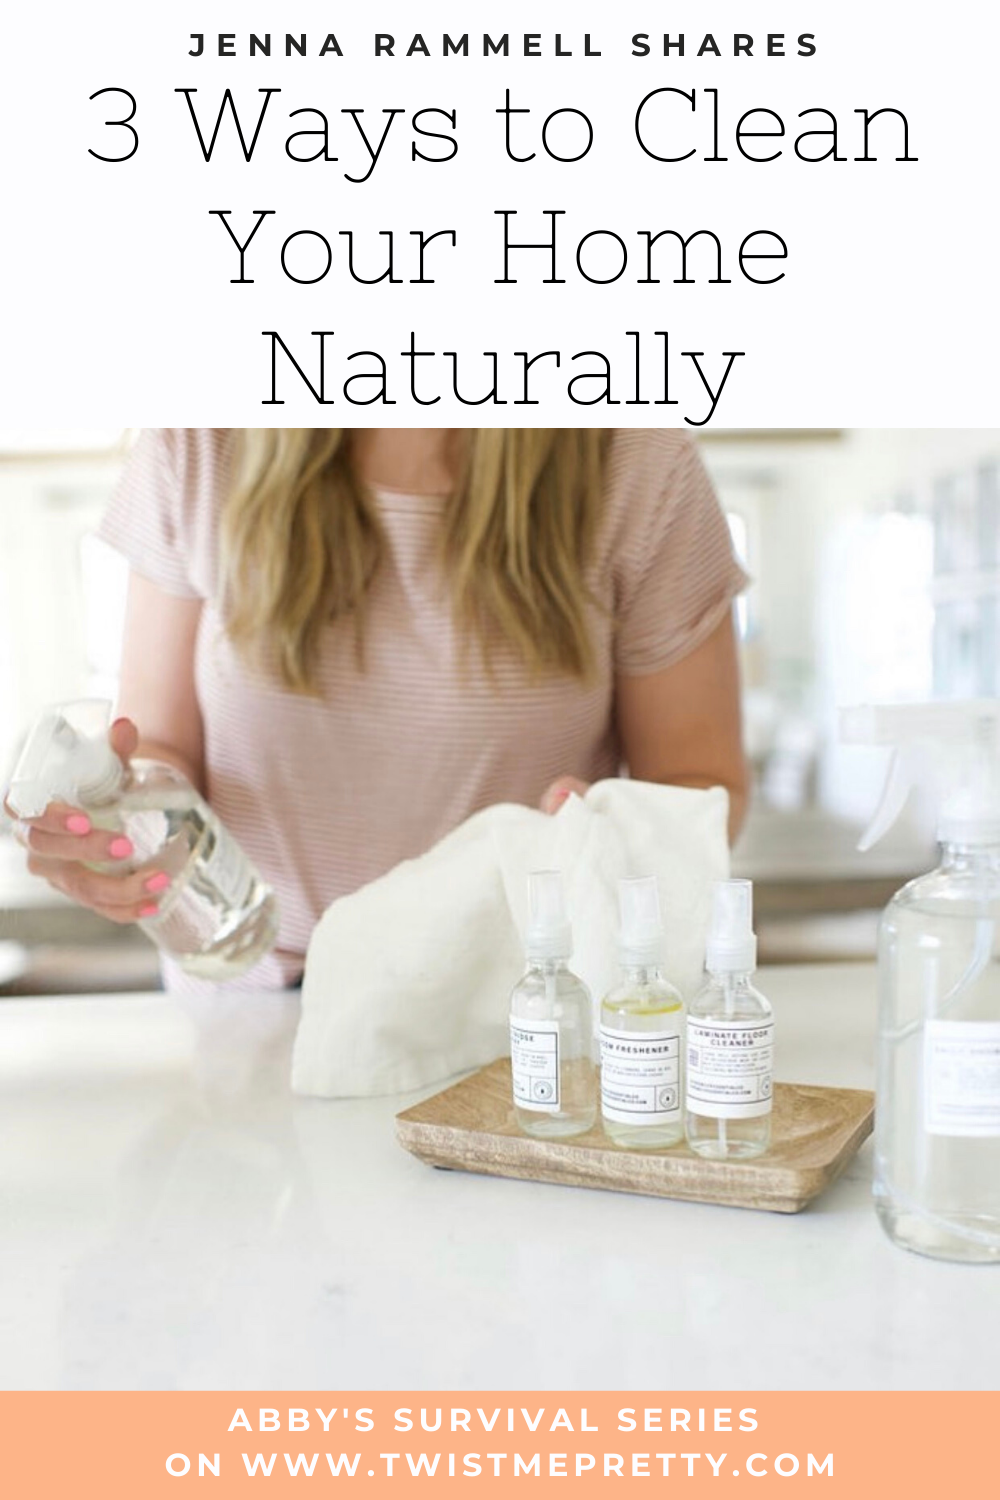 Jenna Rammell Shares 3 Ways to Clean Your Home Naturally. An Installment of Abby's Survival Series. www.TwistMePretty.com